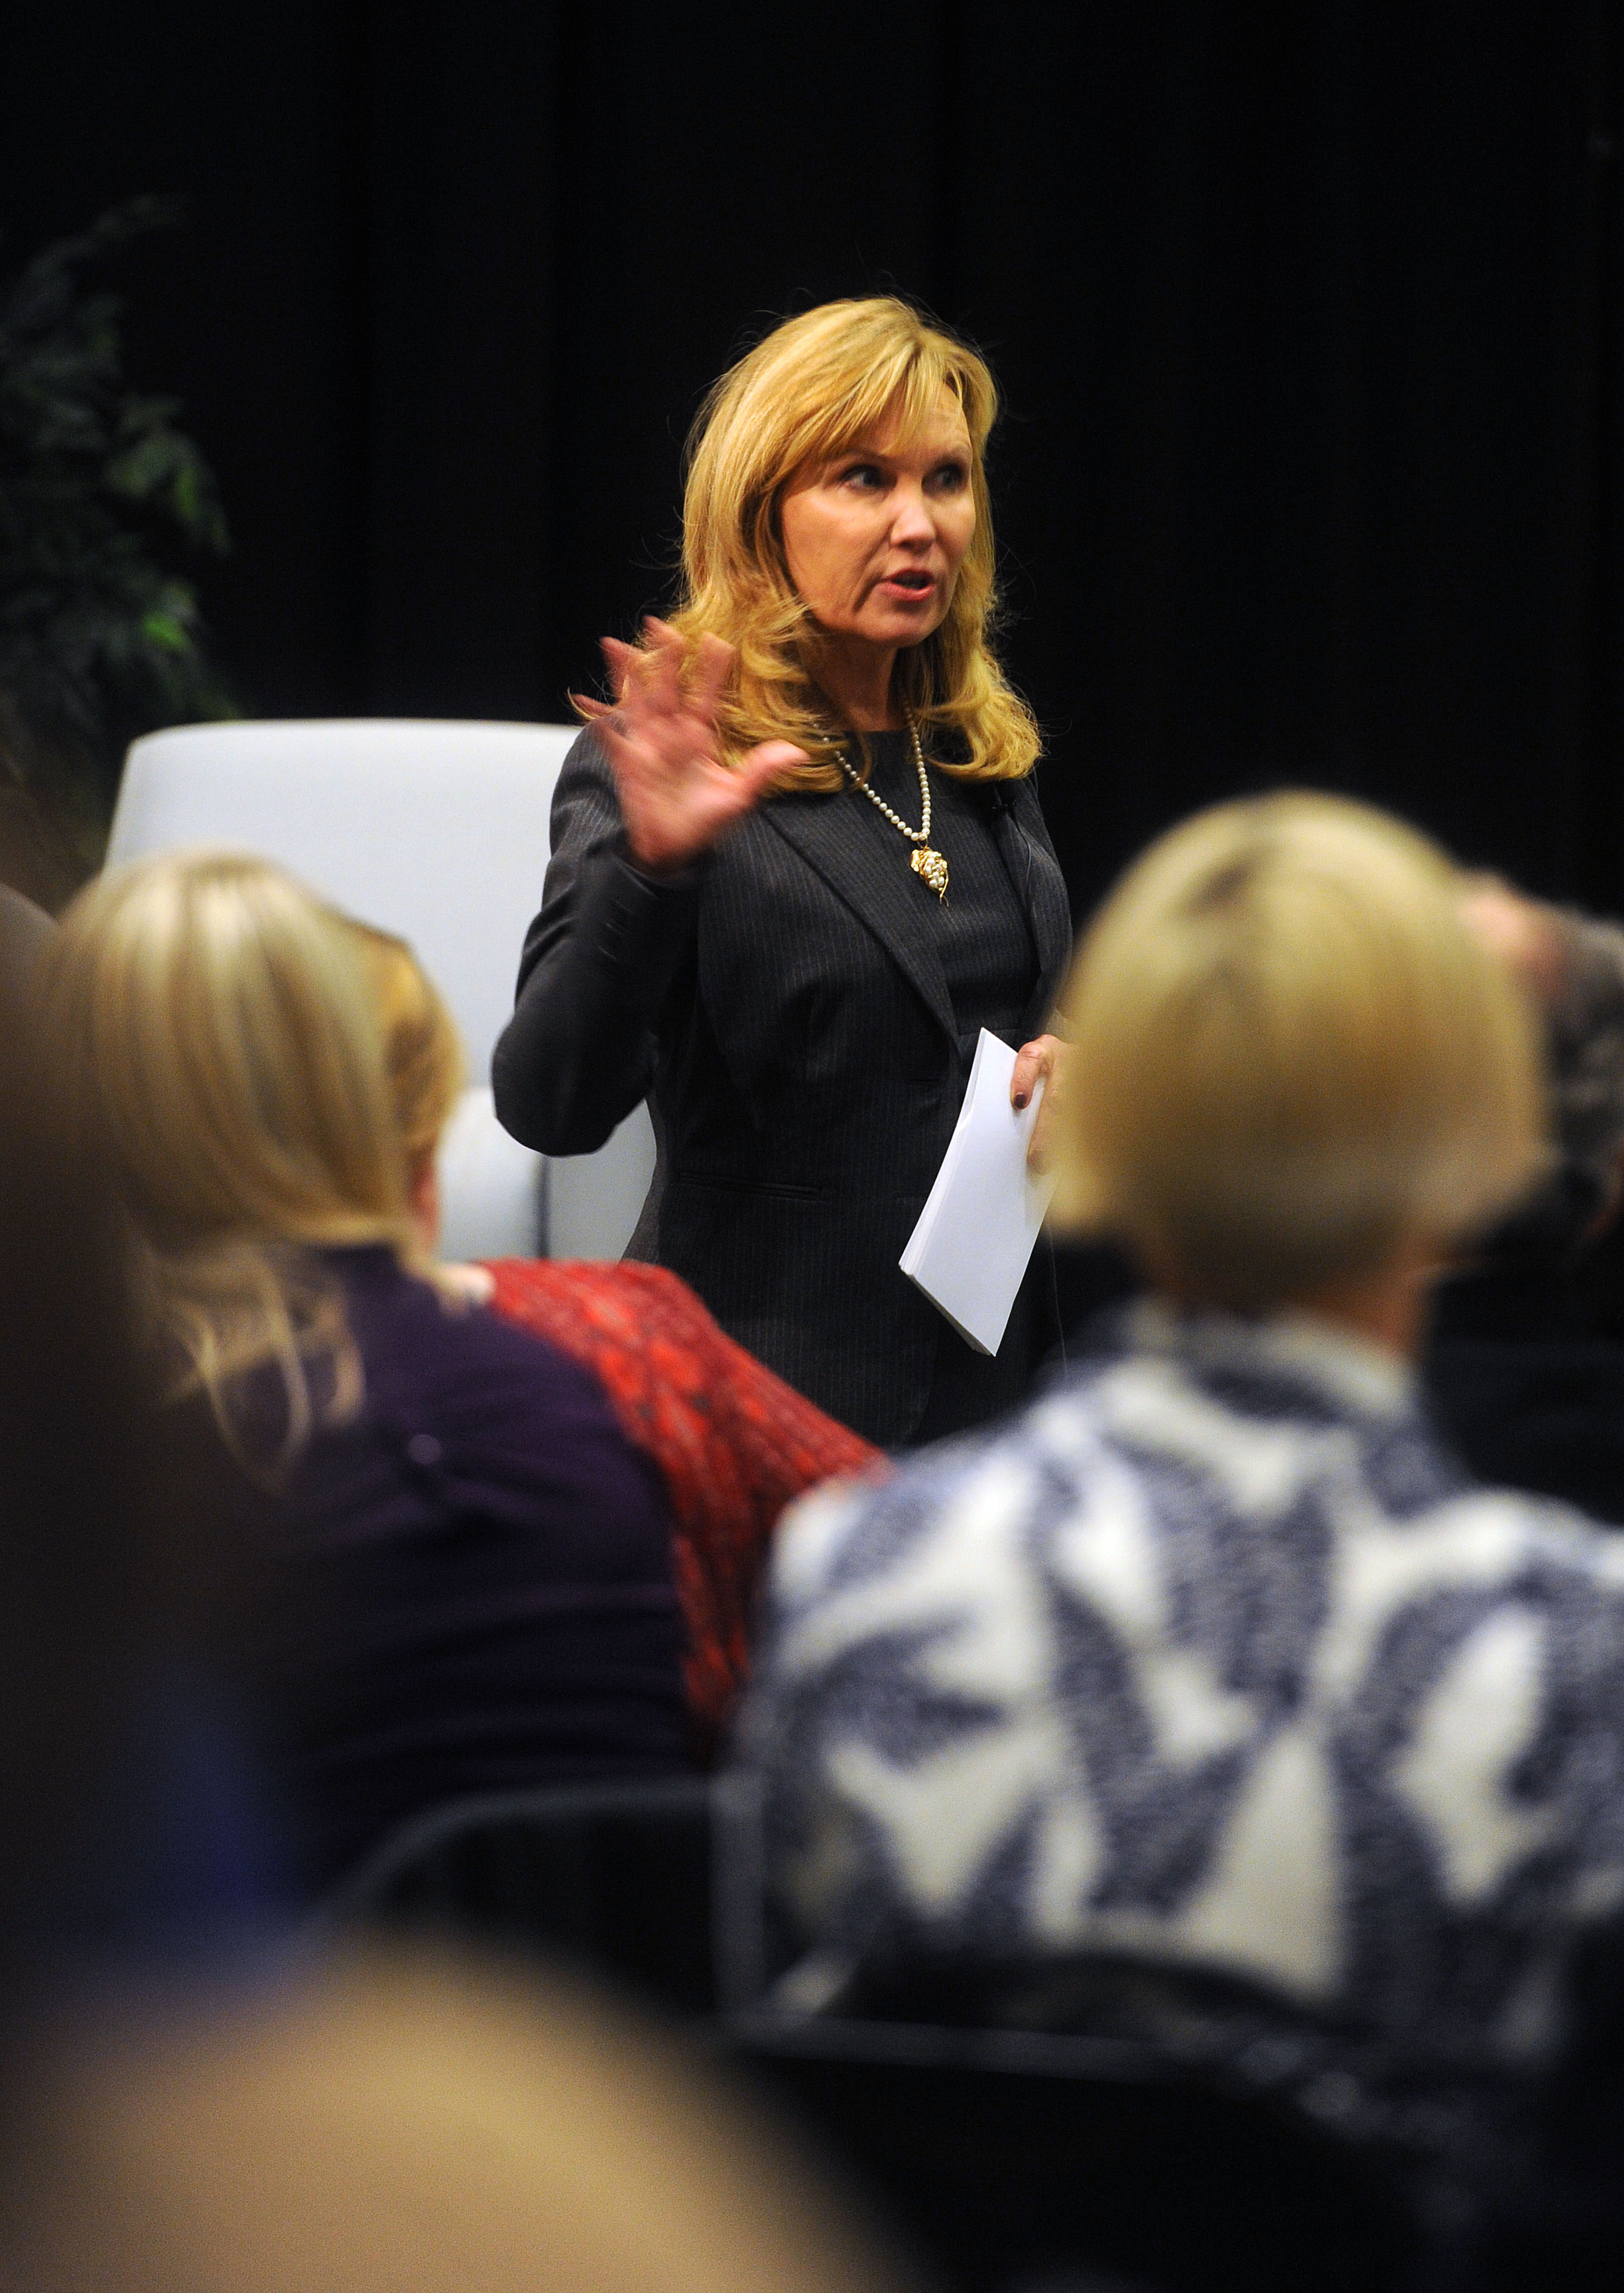 image of Pam Bilbrey at 2014 Women in Leadership Conference